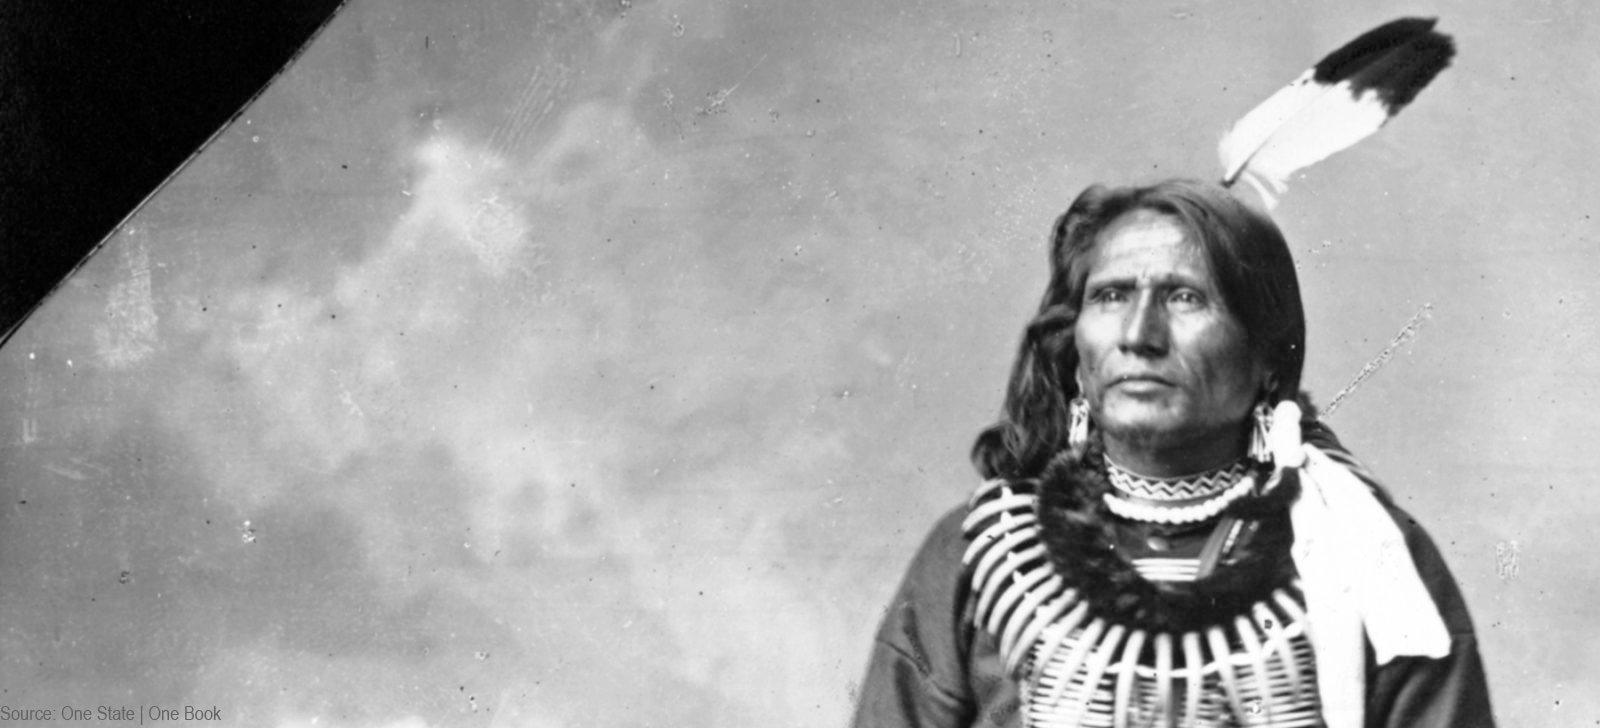 Chief Standing Bear's legacy, civil rights leader of his time - Part 1